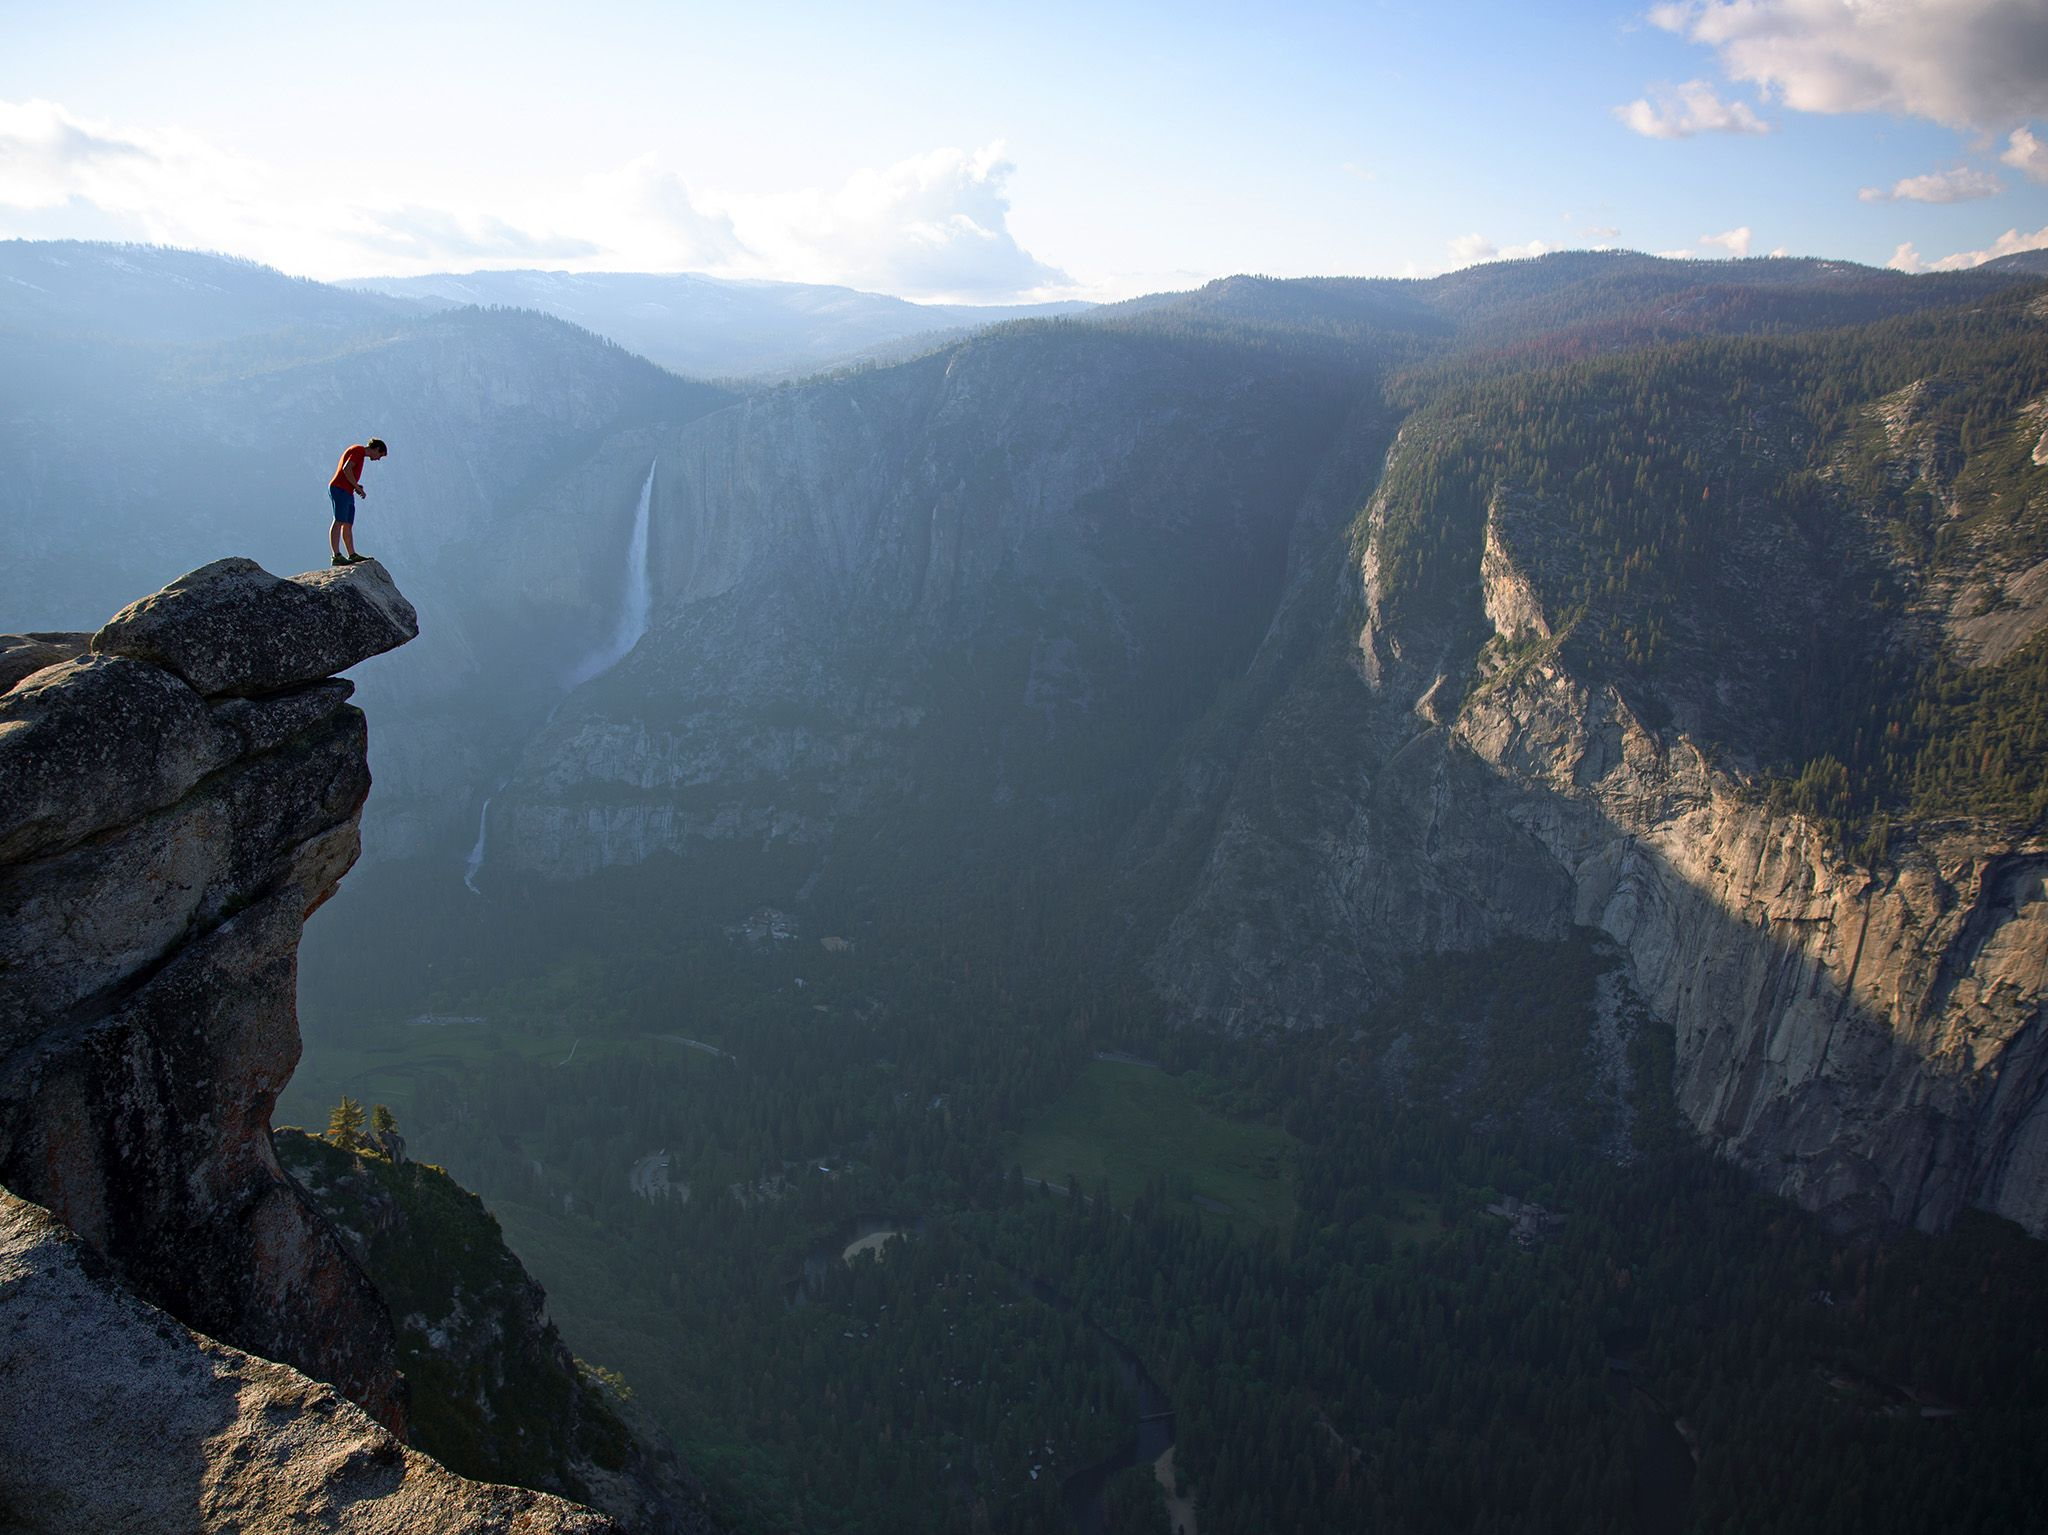 Alex Honnold peers over the edge of Glacier Point in Yosemite National Park. He had just climbed... [Foto del giorno - March 2019]